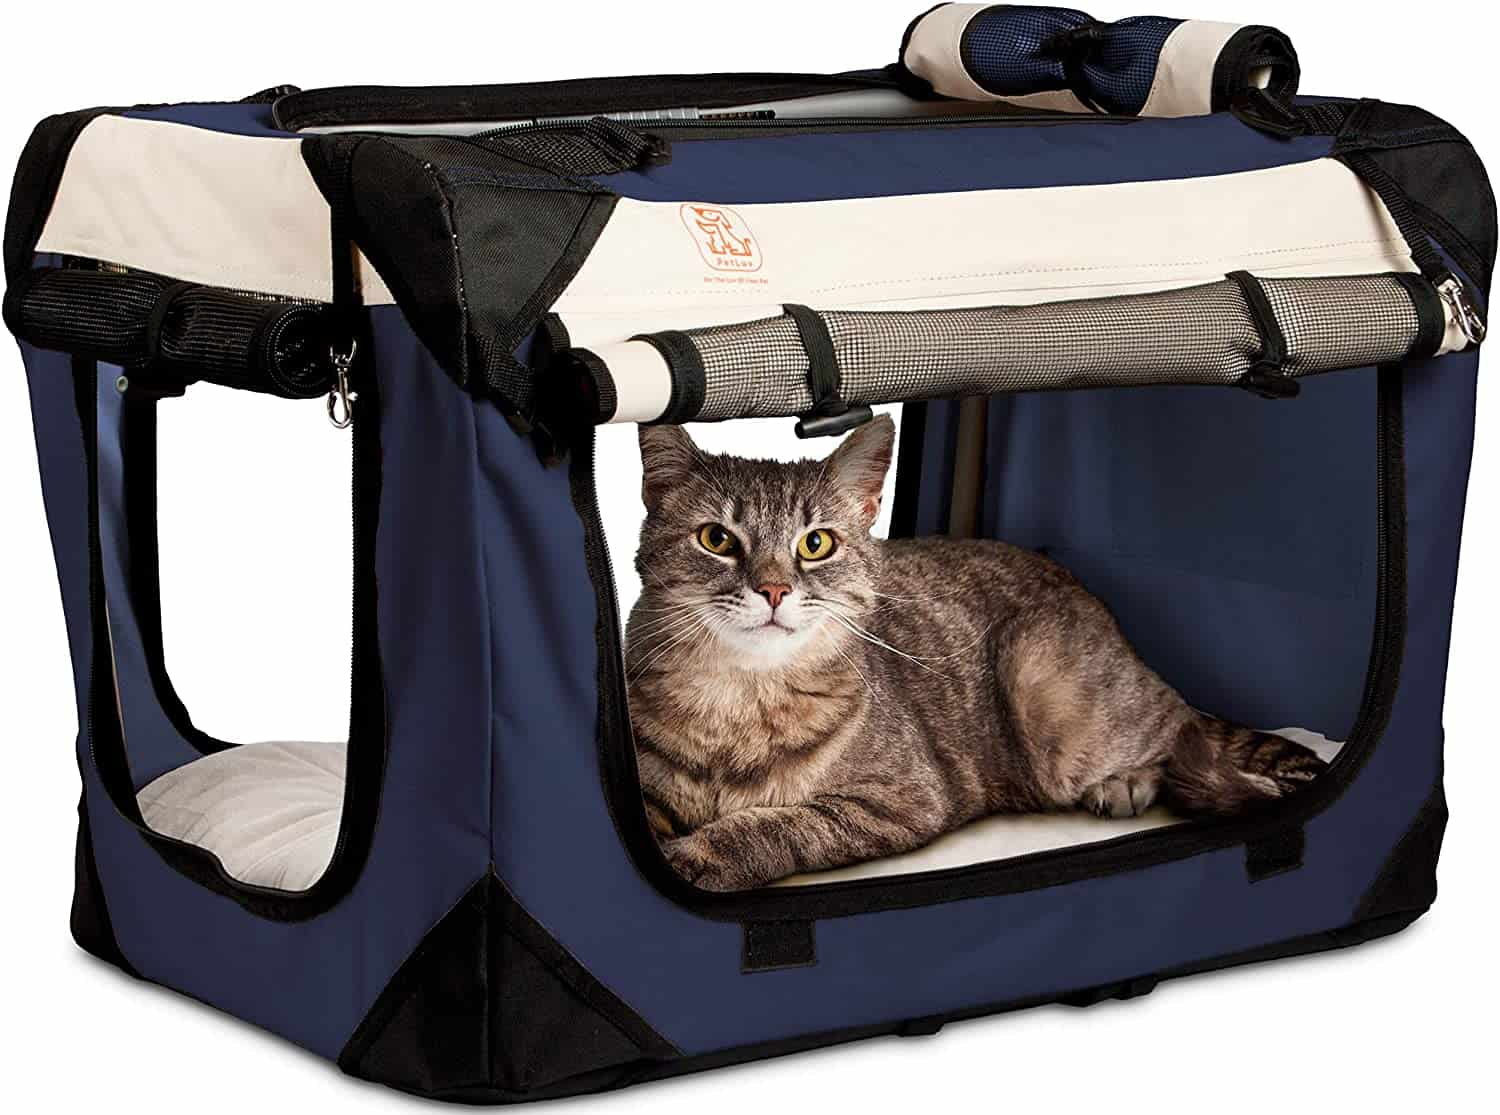 The Best Cat Carriers for 2021: Which Are They? 3